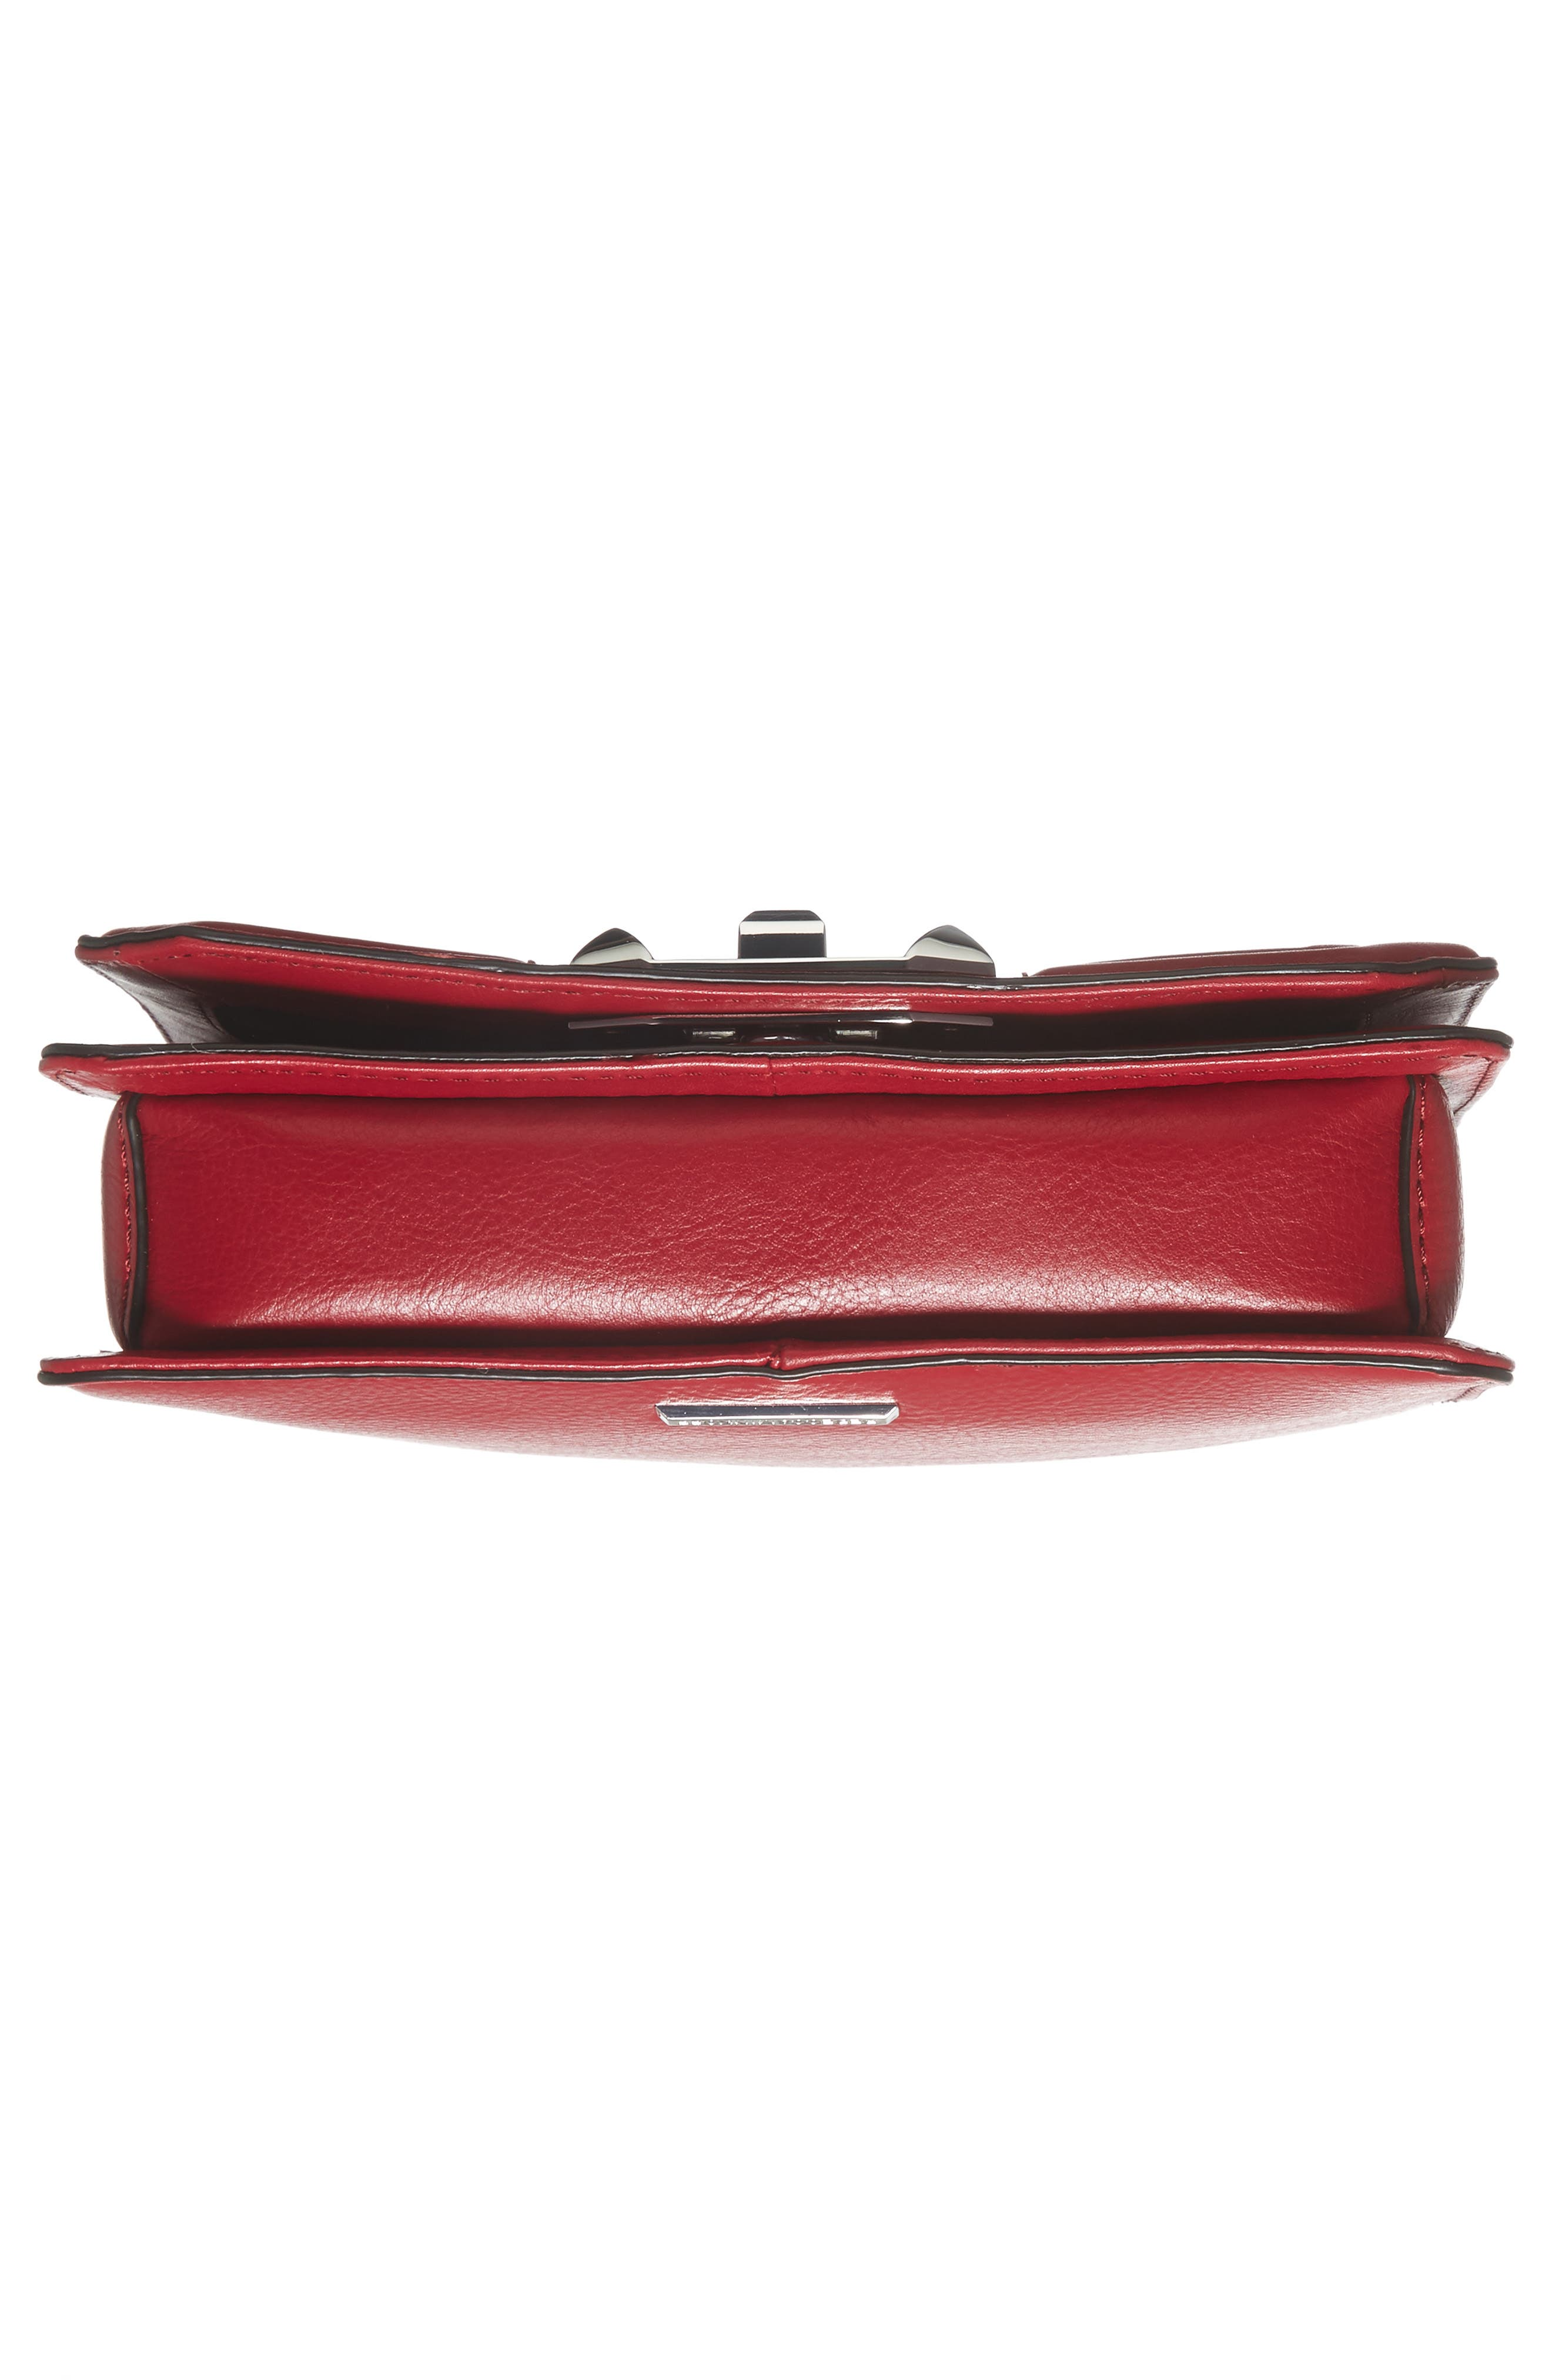 Small Love Leather Crossbody Bag,                             Alternate thumbnail 4, color,                             Beet/ Silver Hardware